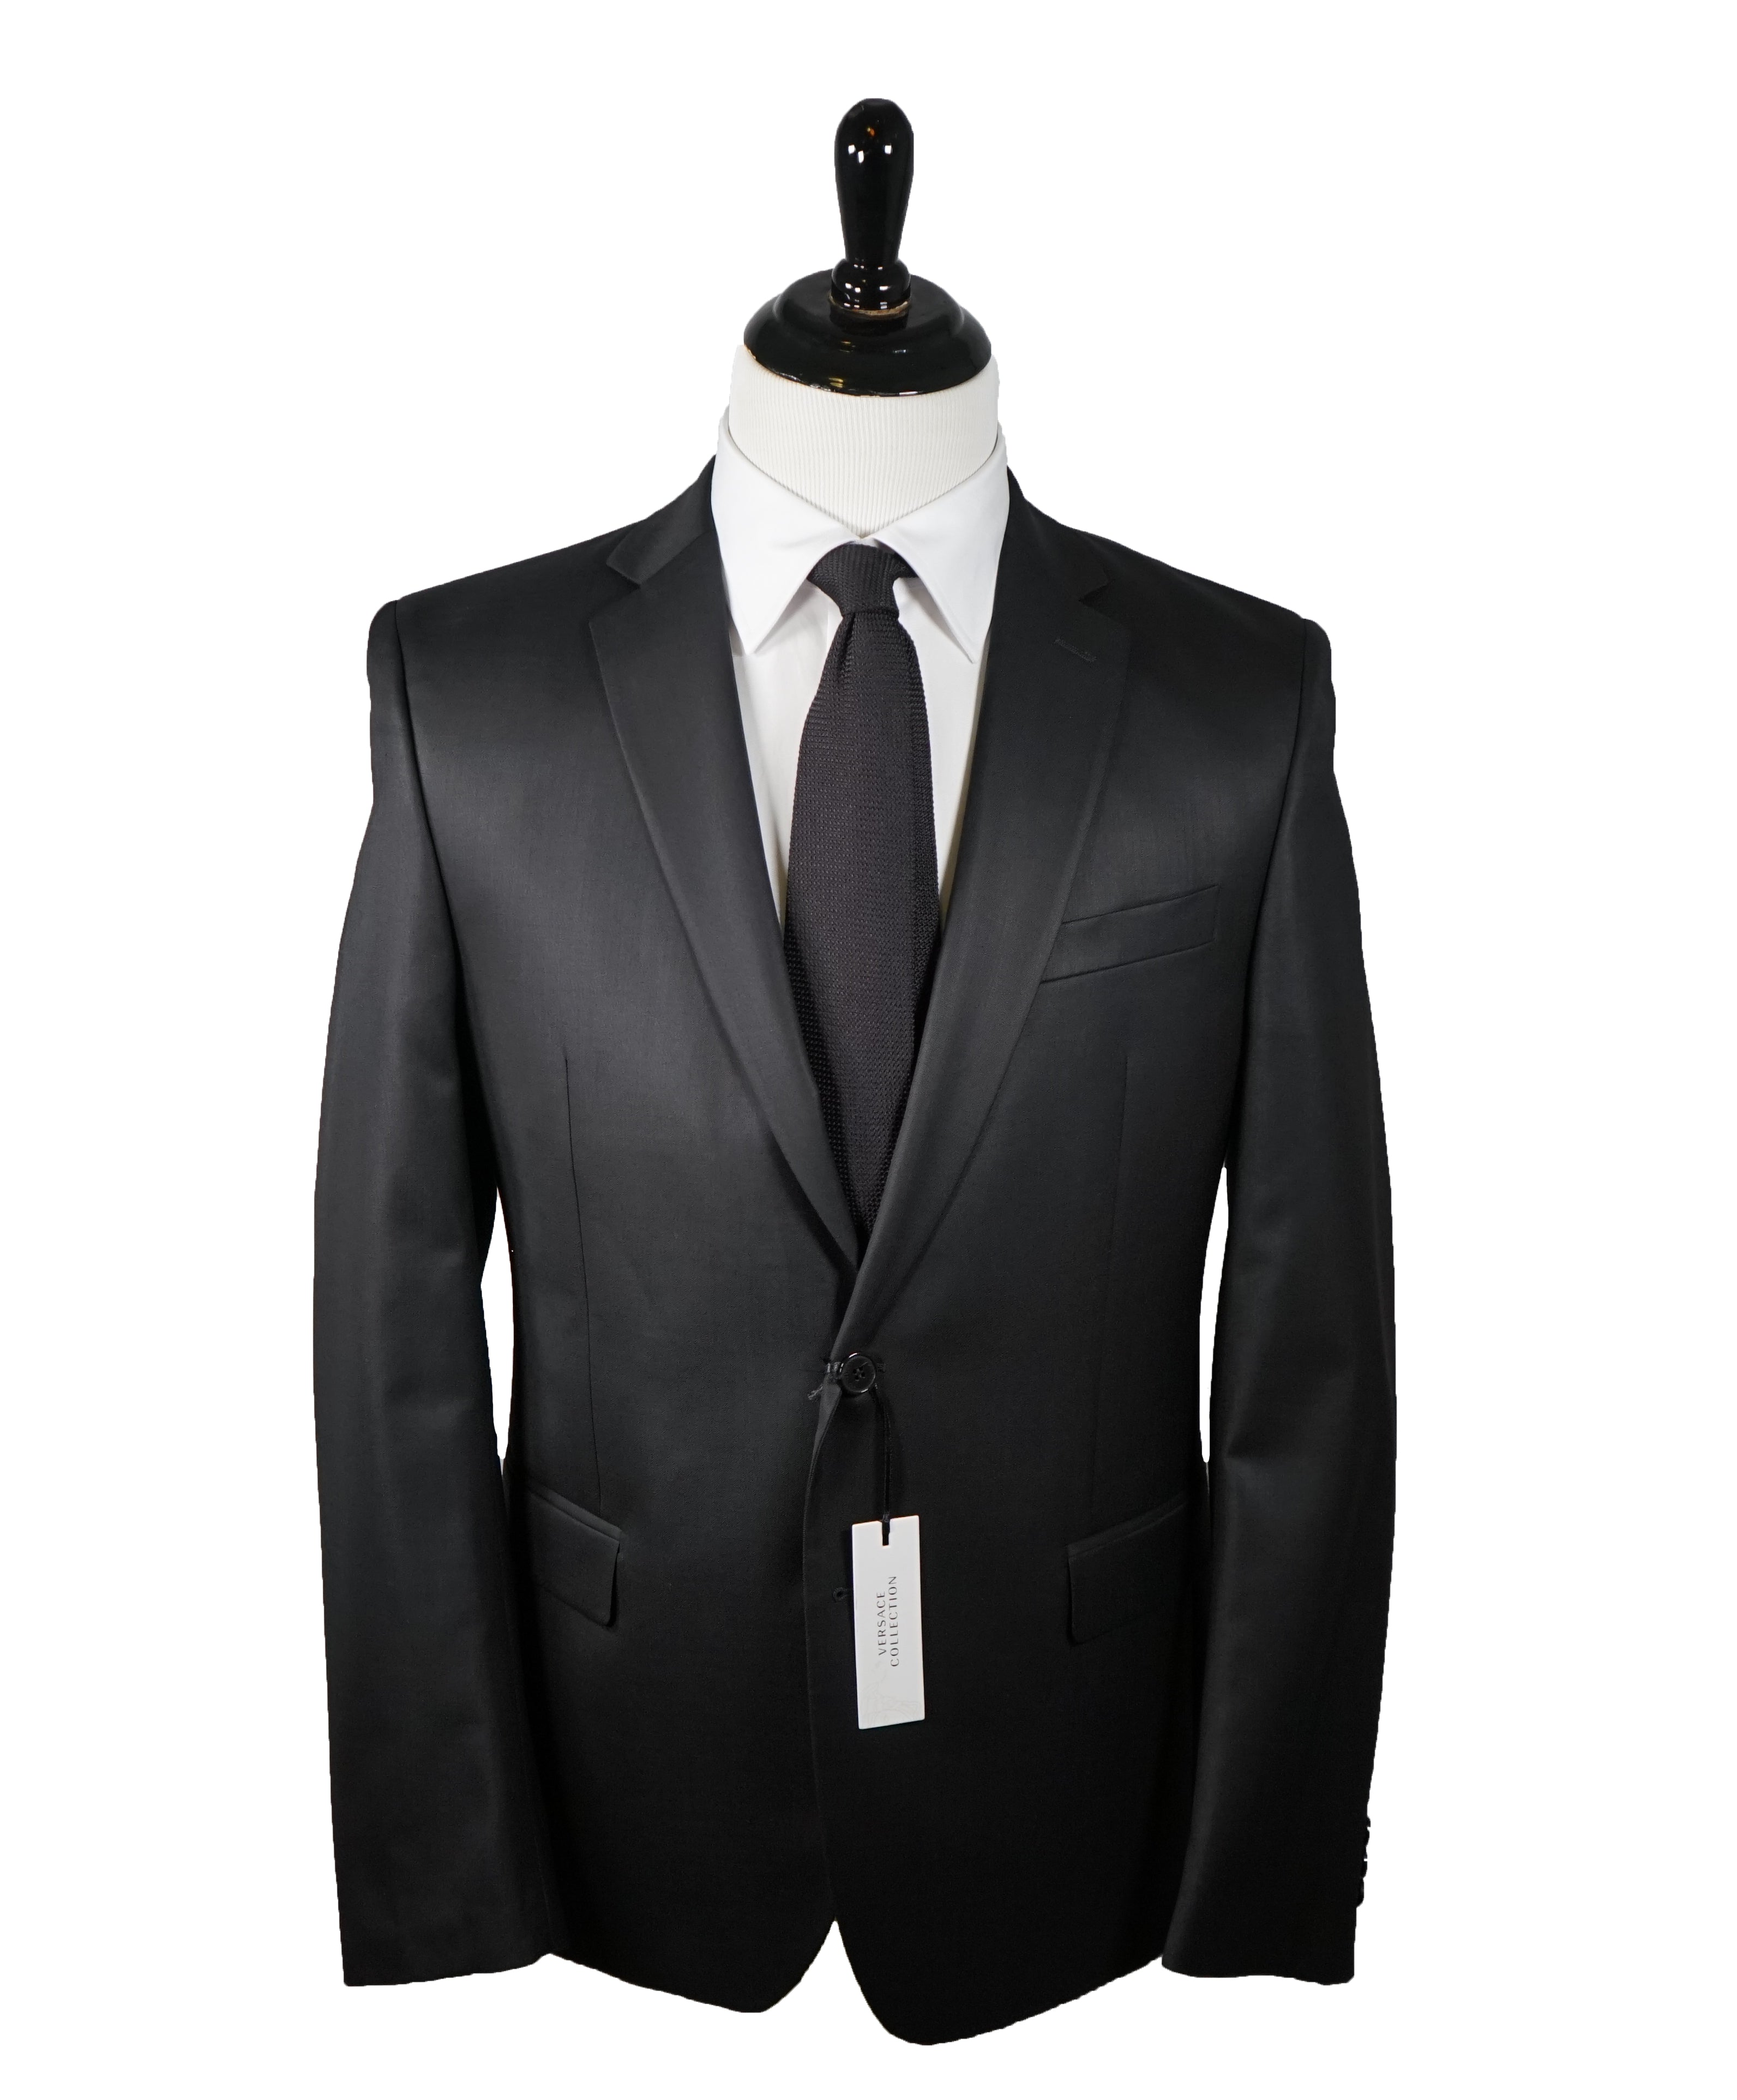 VERSACE COLLECTION - Notch Lapel Black Suit With Muted Sheen - 40R